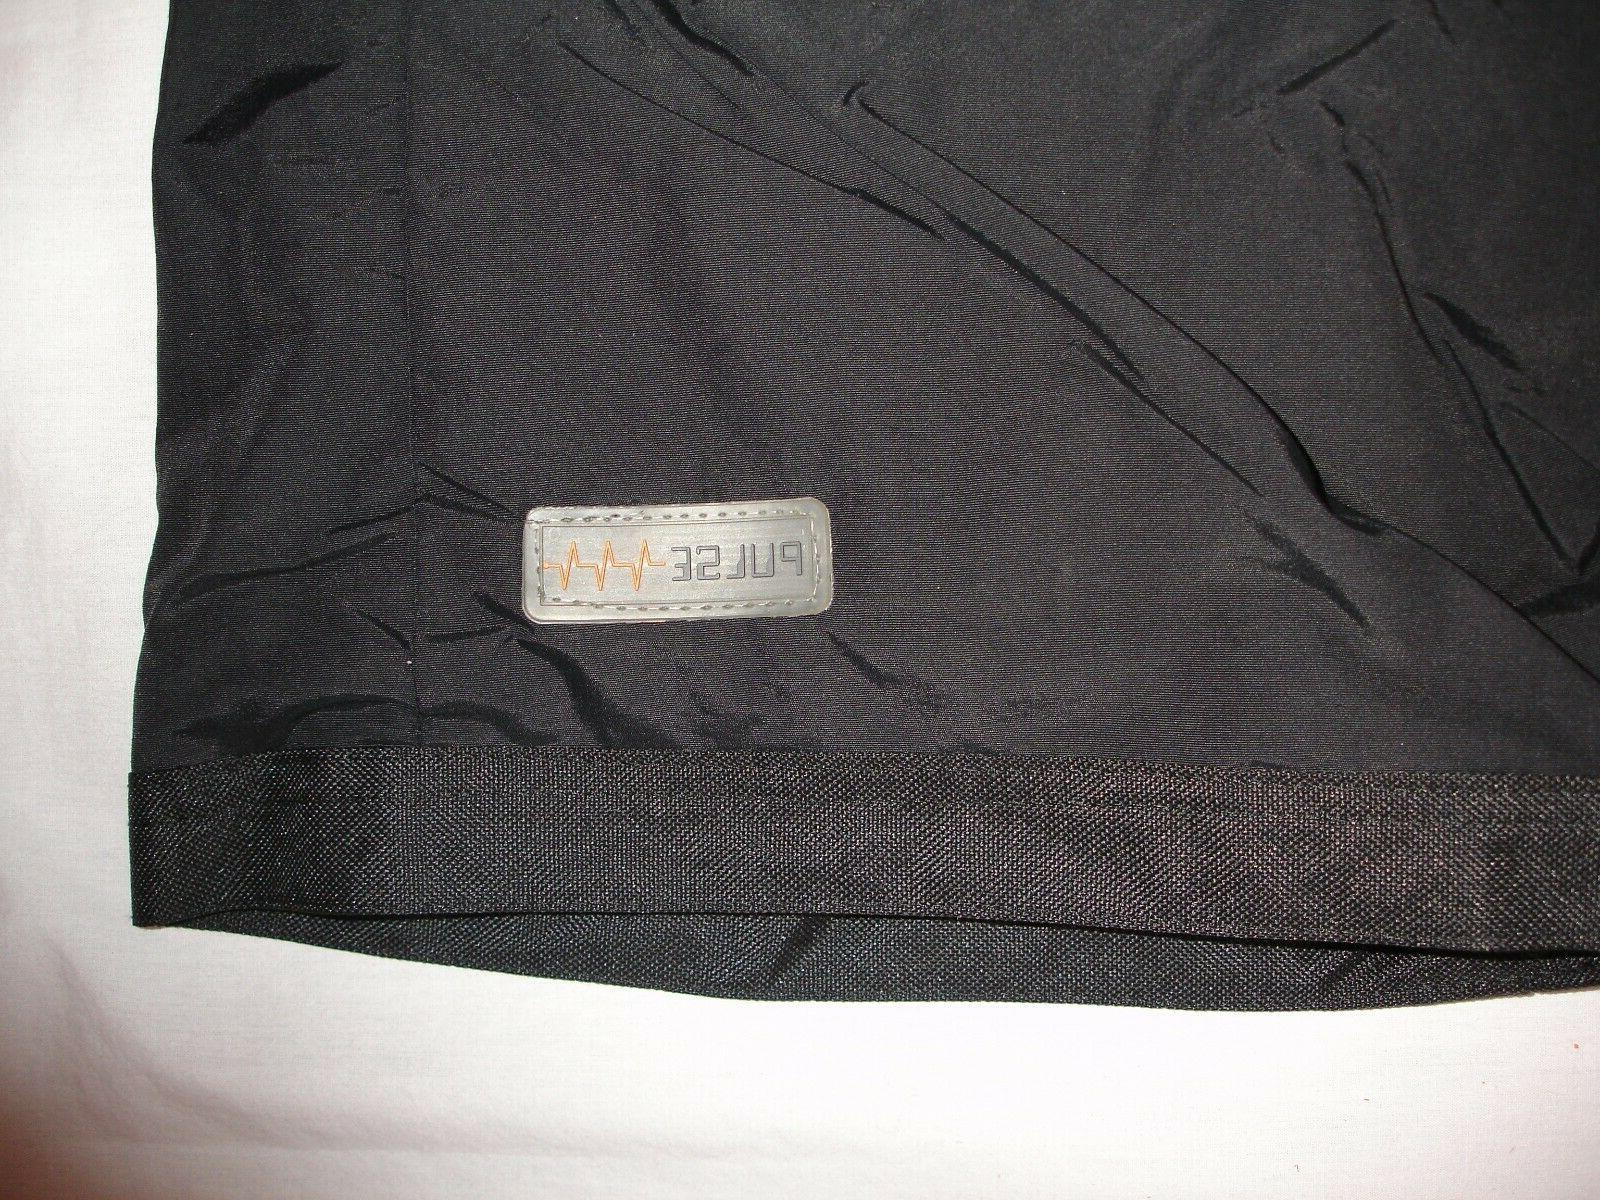 XL Insulated Winter Snow/Ski/Snowboard Pants